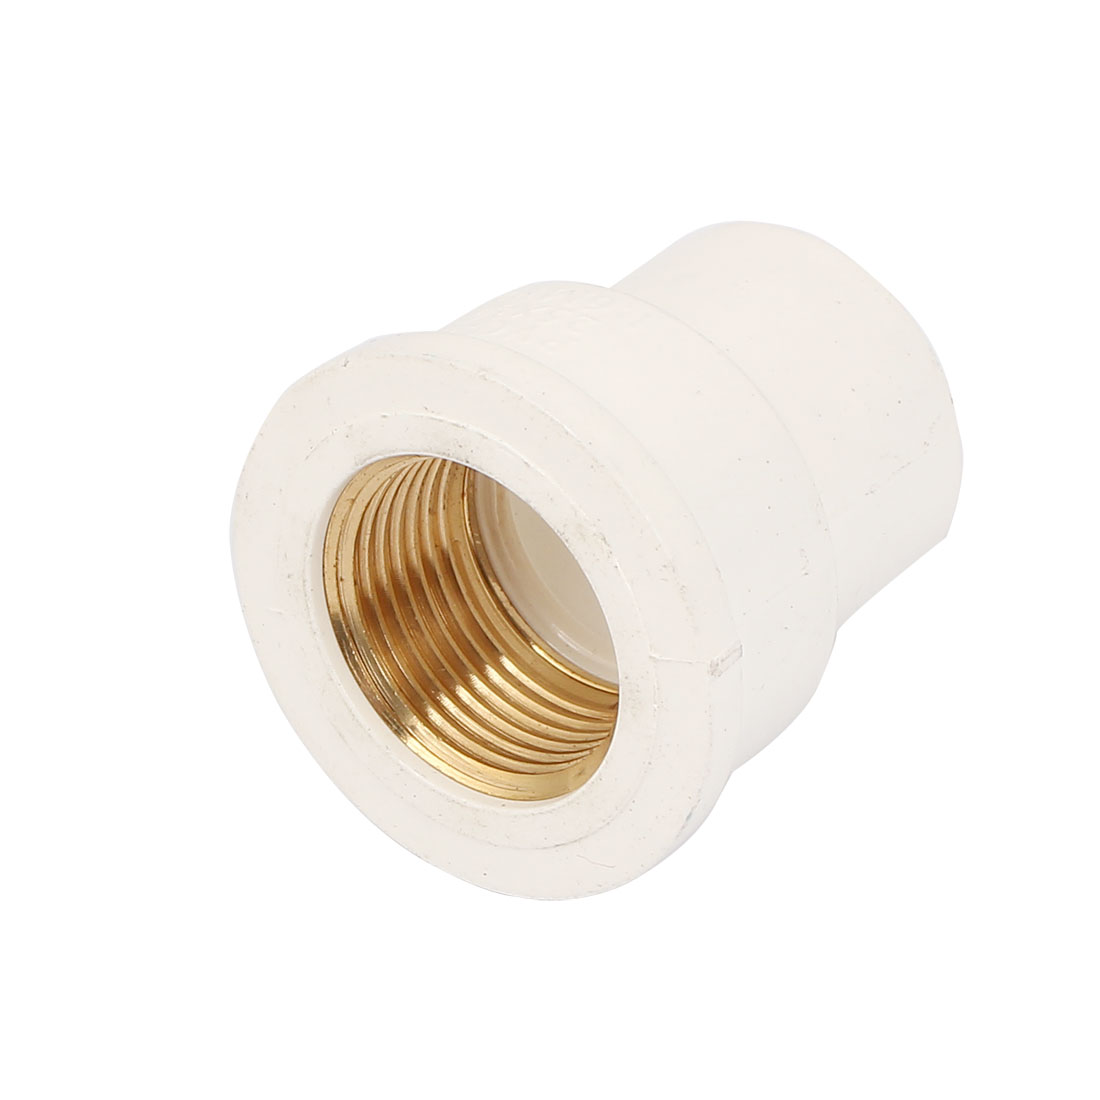 3/4BSP Female Thread PVC Straight Pipe Fitting Coupling Adapter Connector